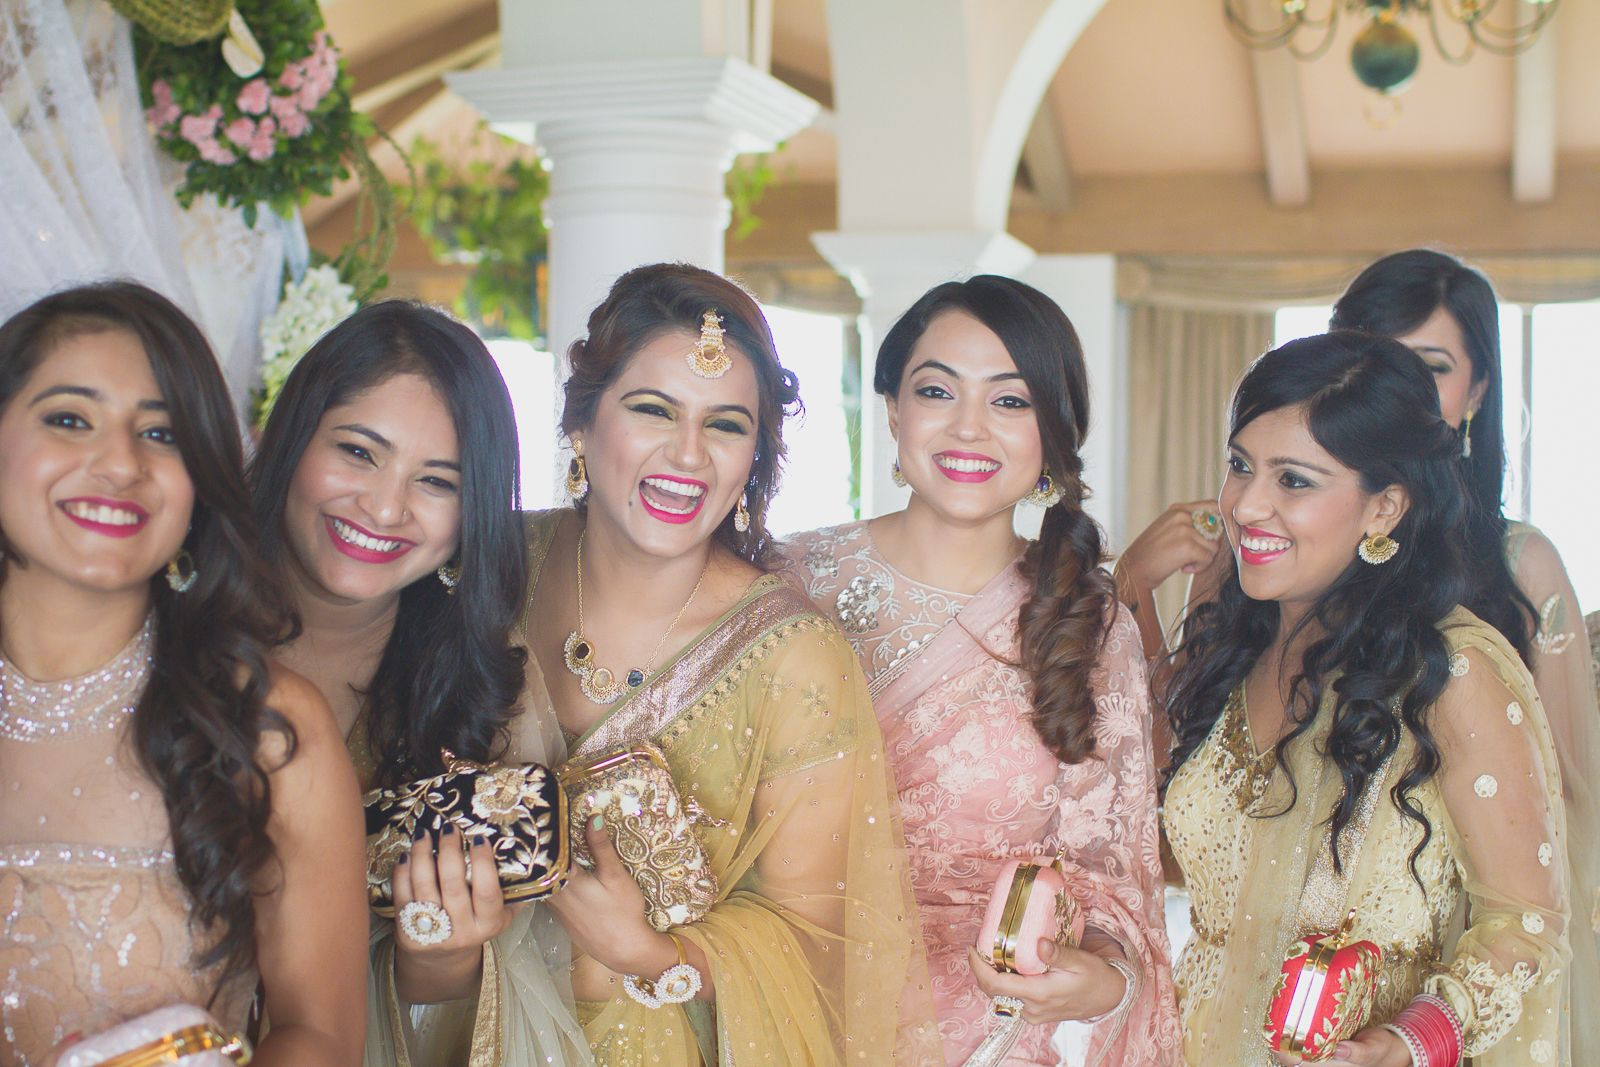 Devinamalhotra the bride to be srikes a happy pose with her